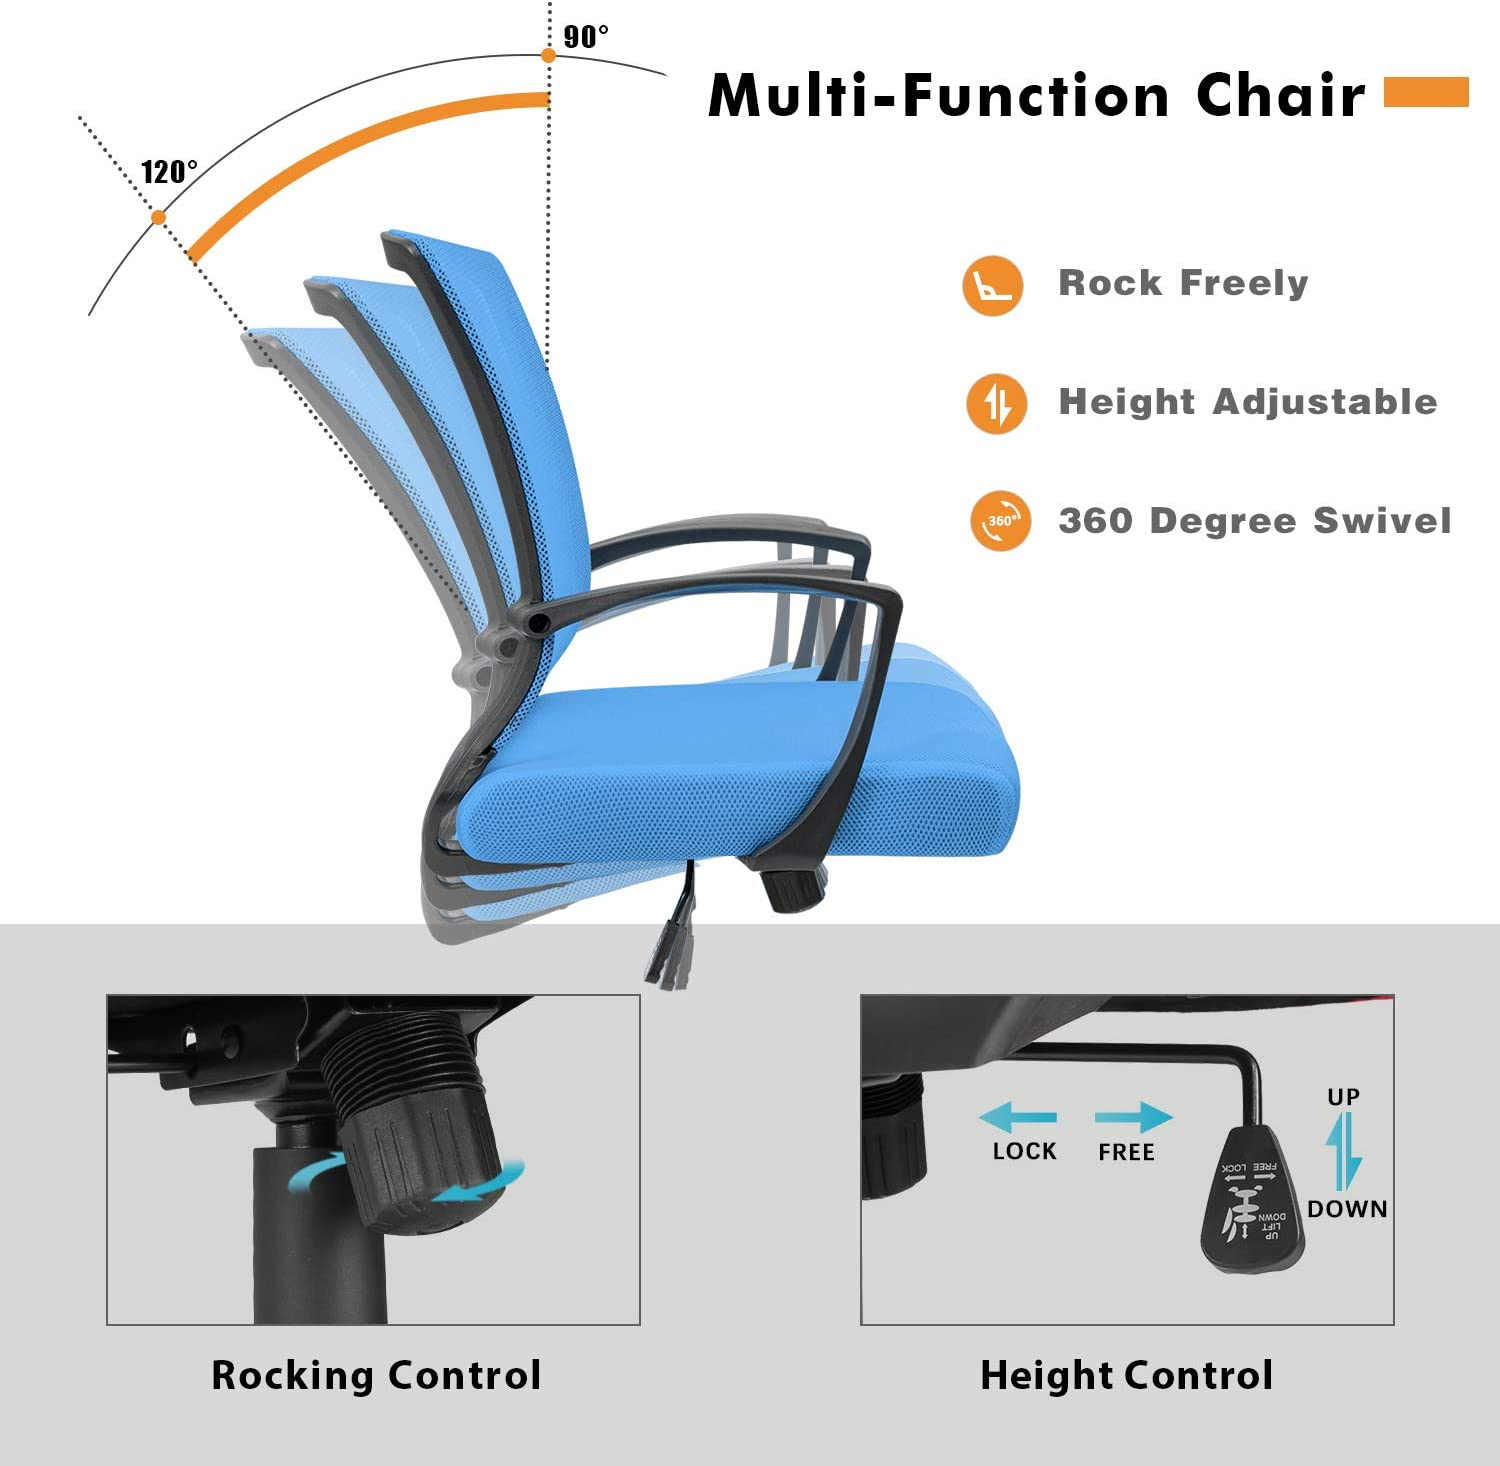 Homall Office Chair Desk Chair Fabric Mesh Chair Mid Back Swivel Computer Chair Lumbar Support Executive Chair Adjustable Height Blue